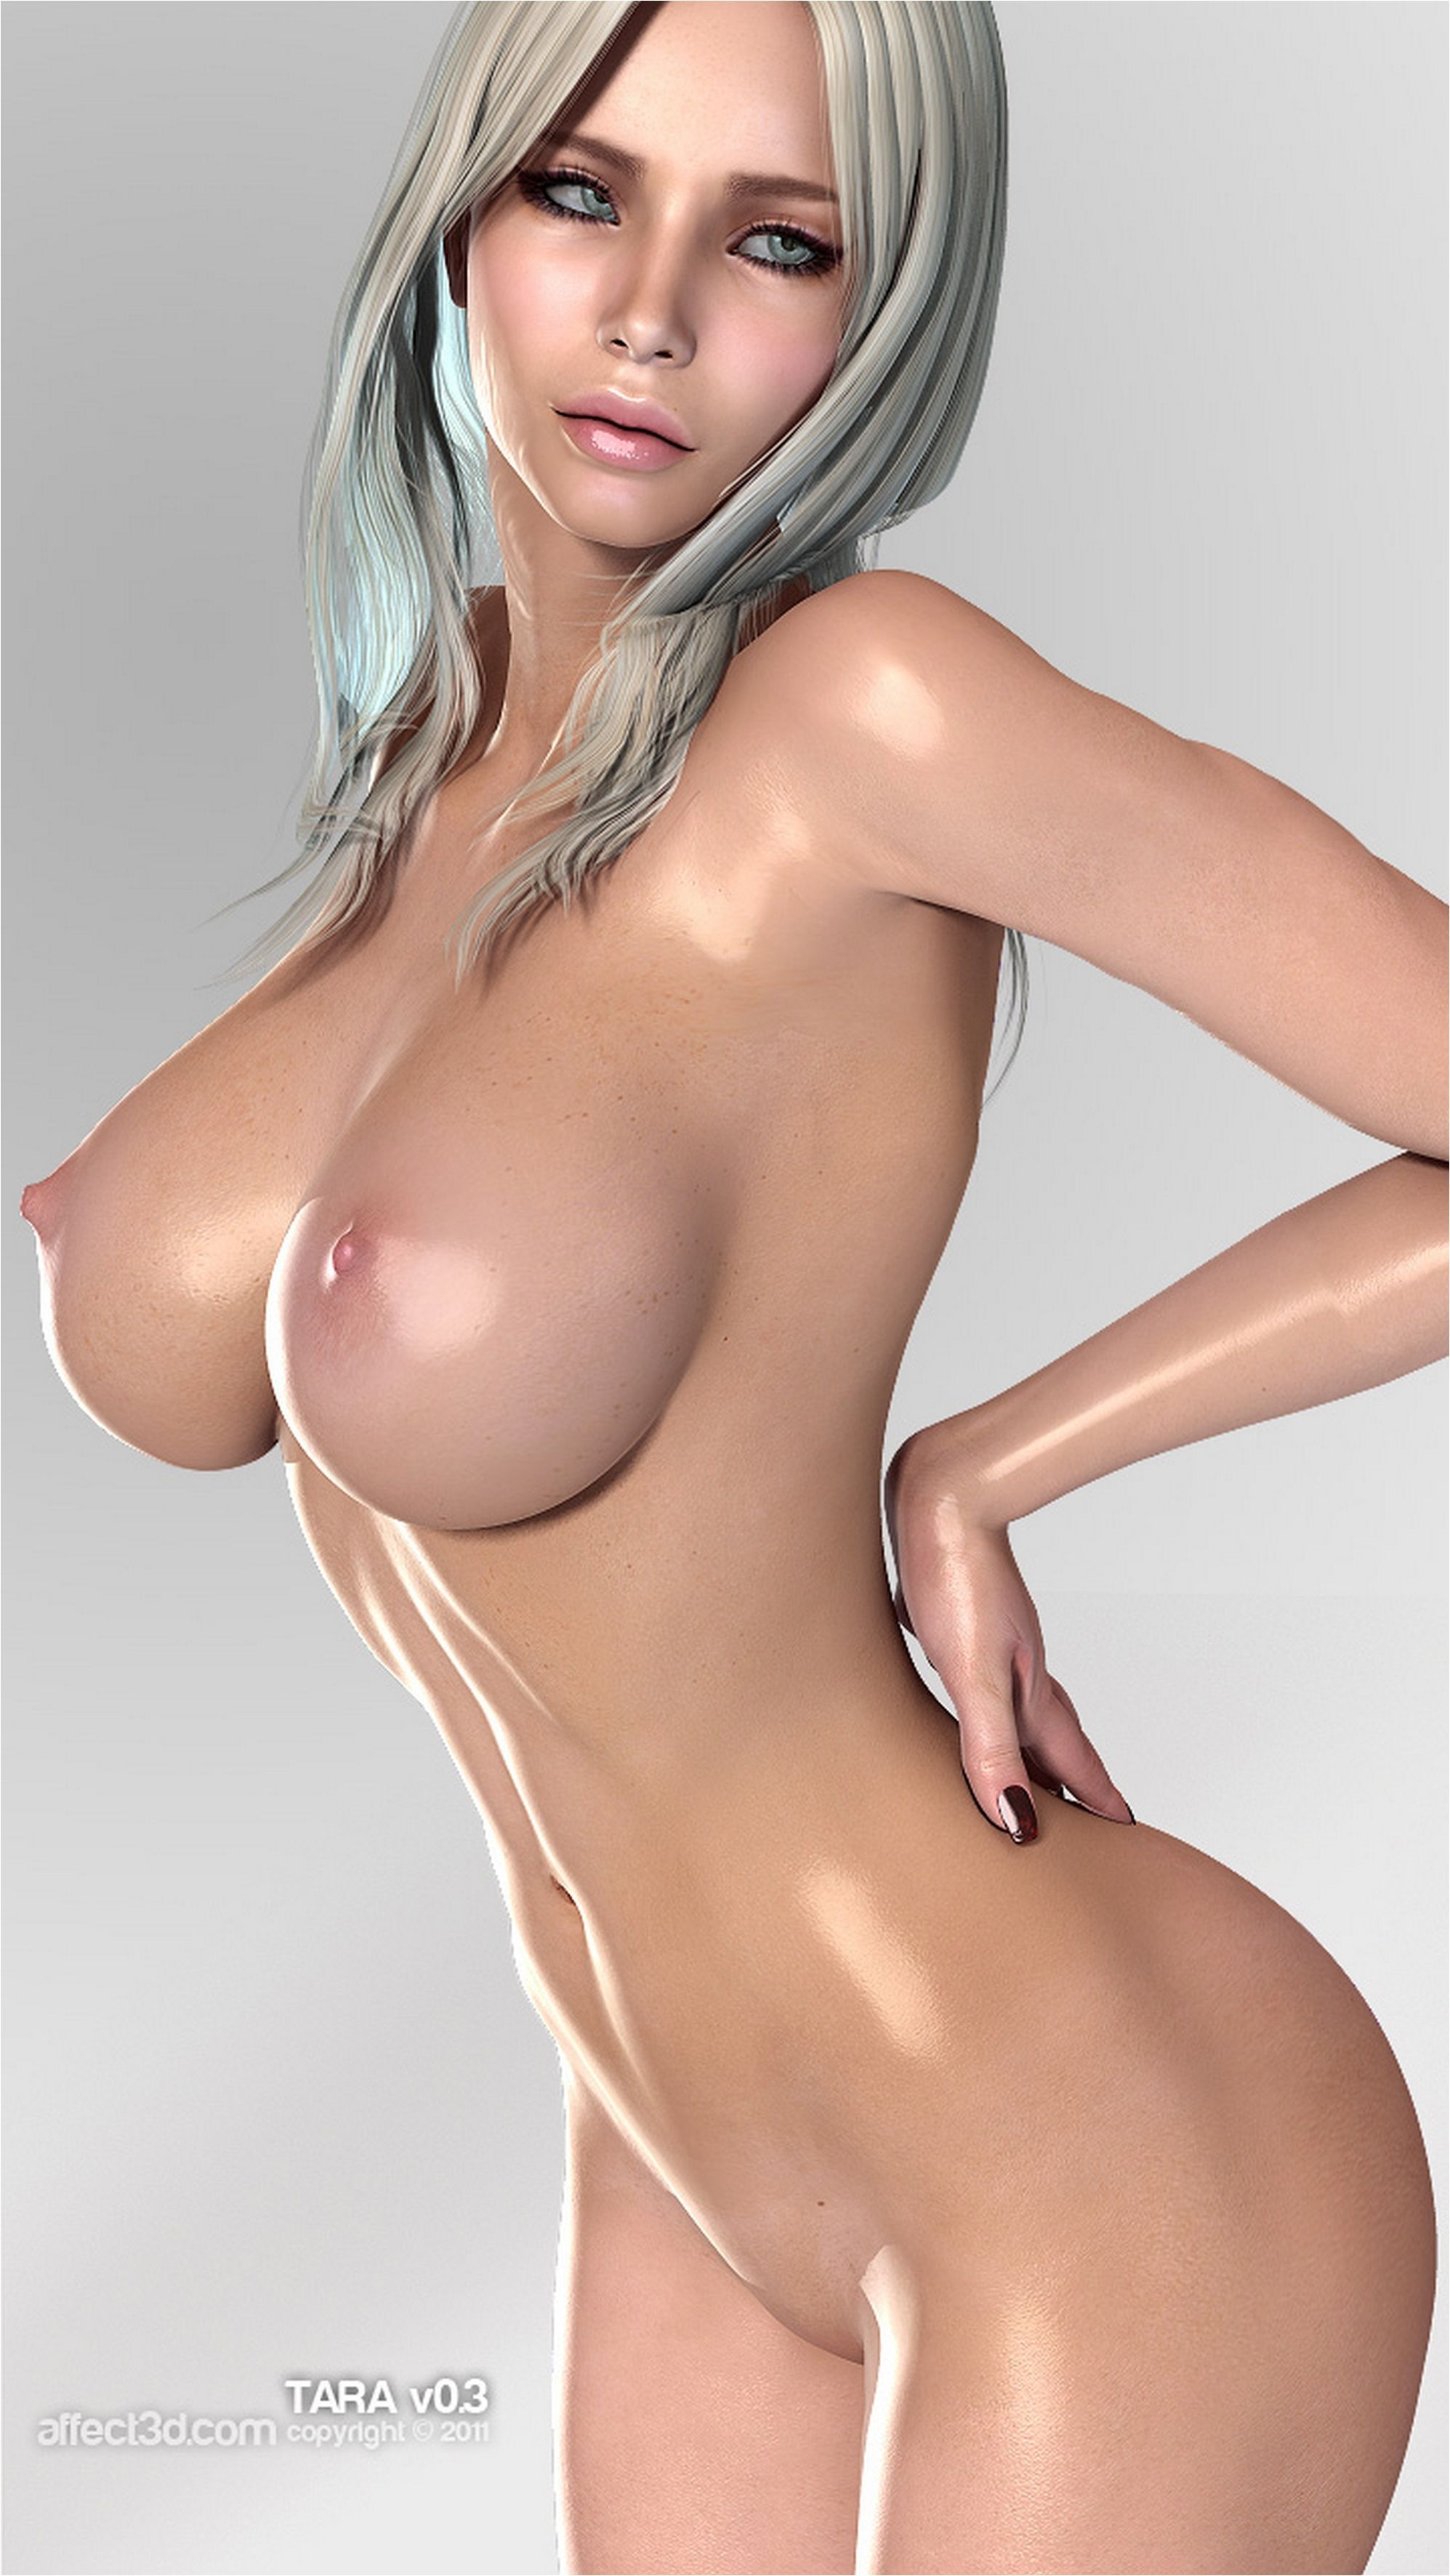 Facebook nude images